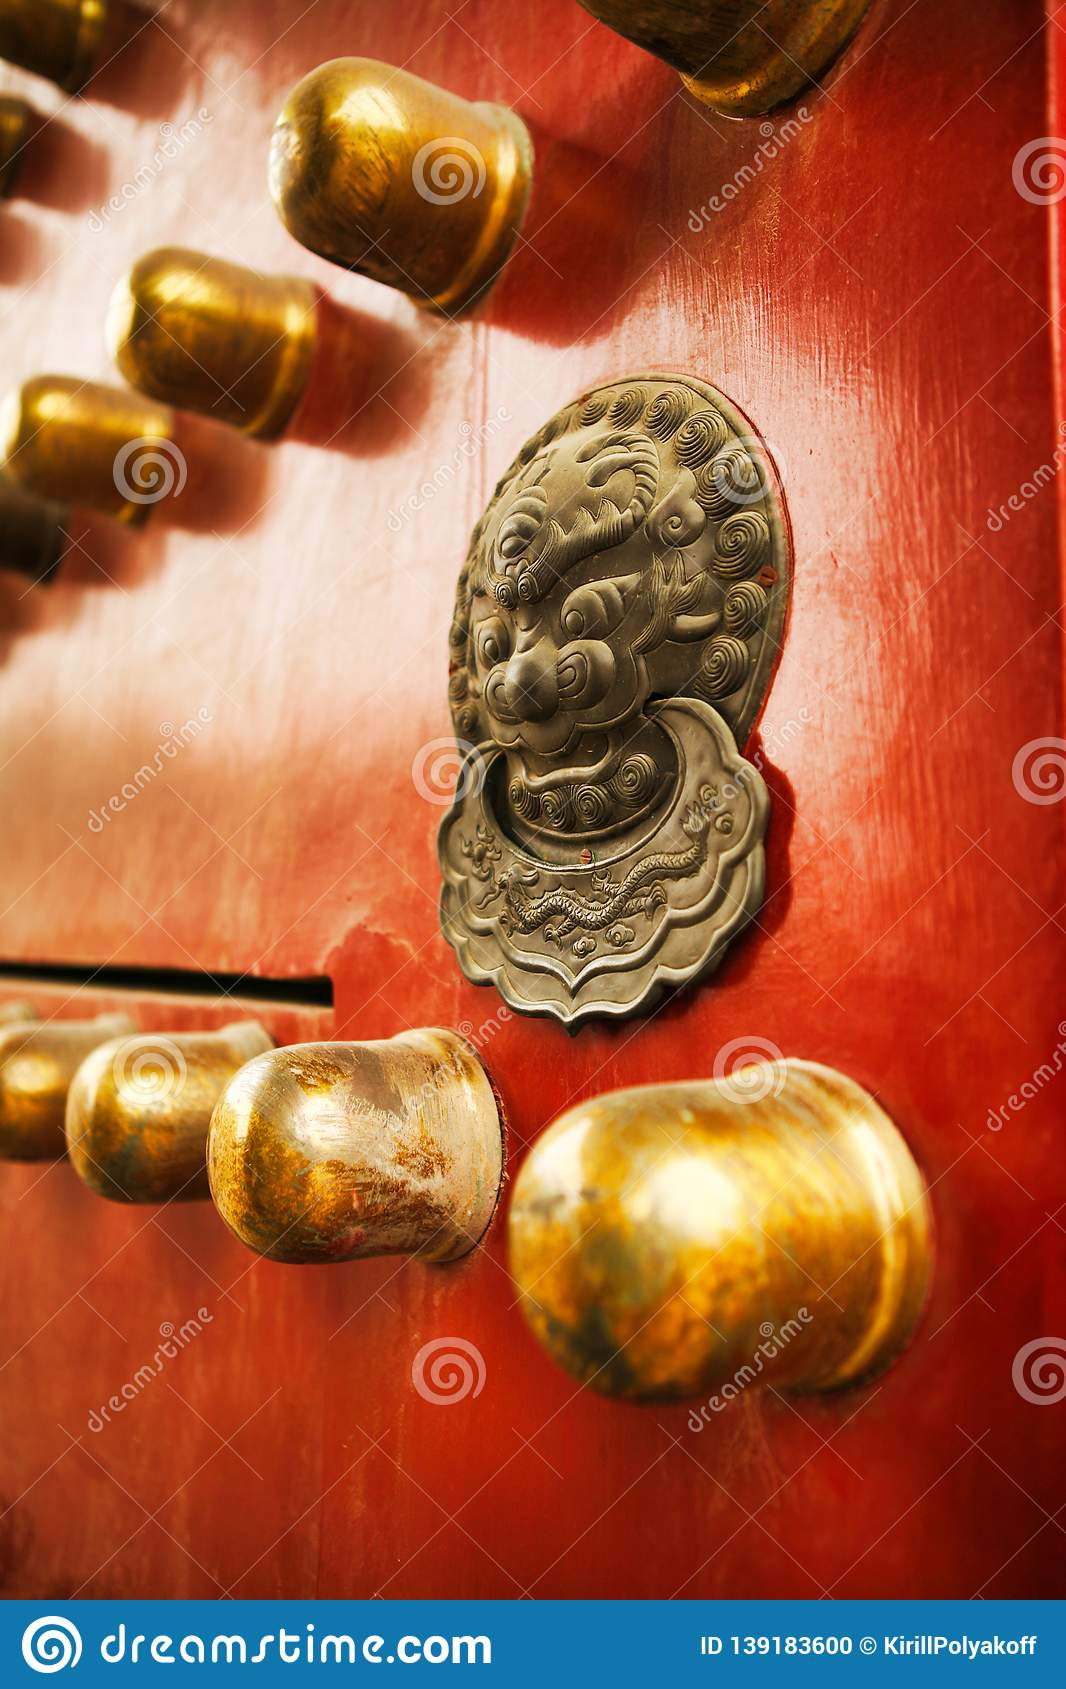 Richly decorated red wooden door with decoration in the Forbidden City, Beijing, China.